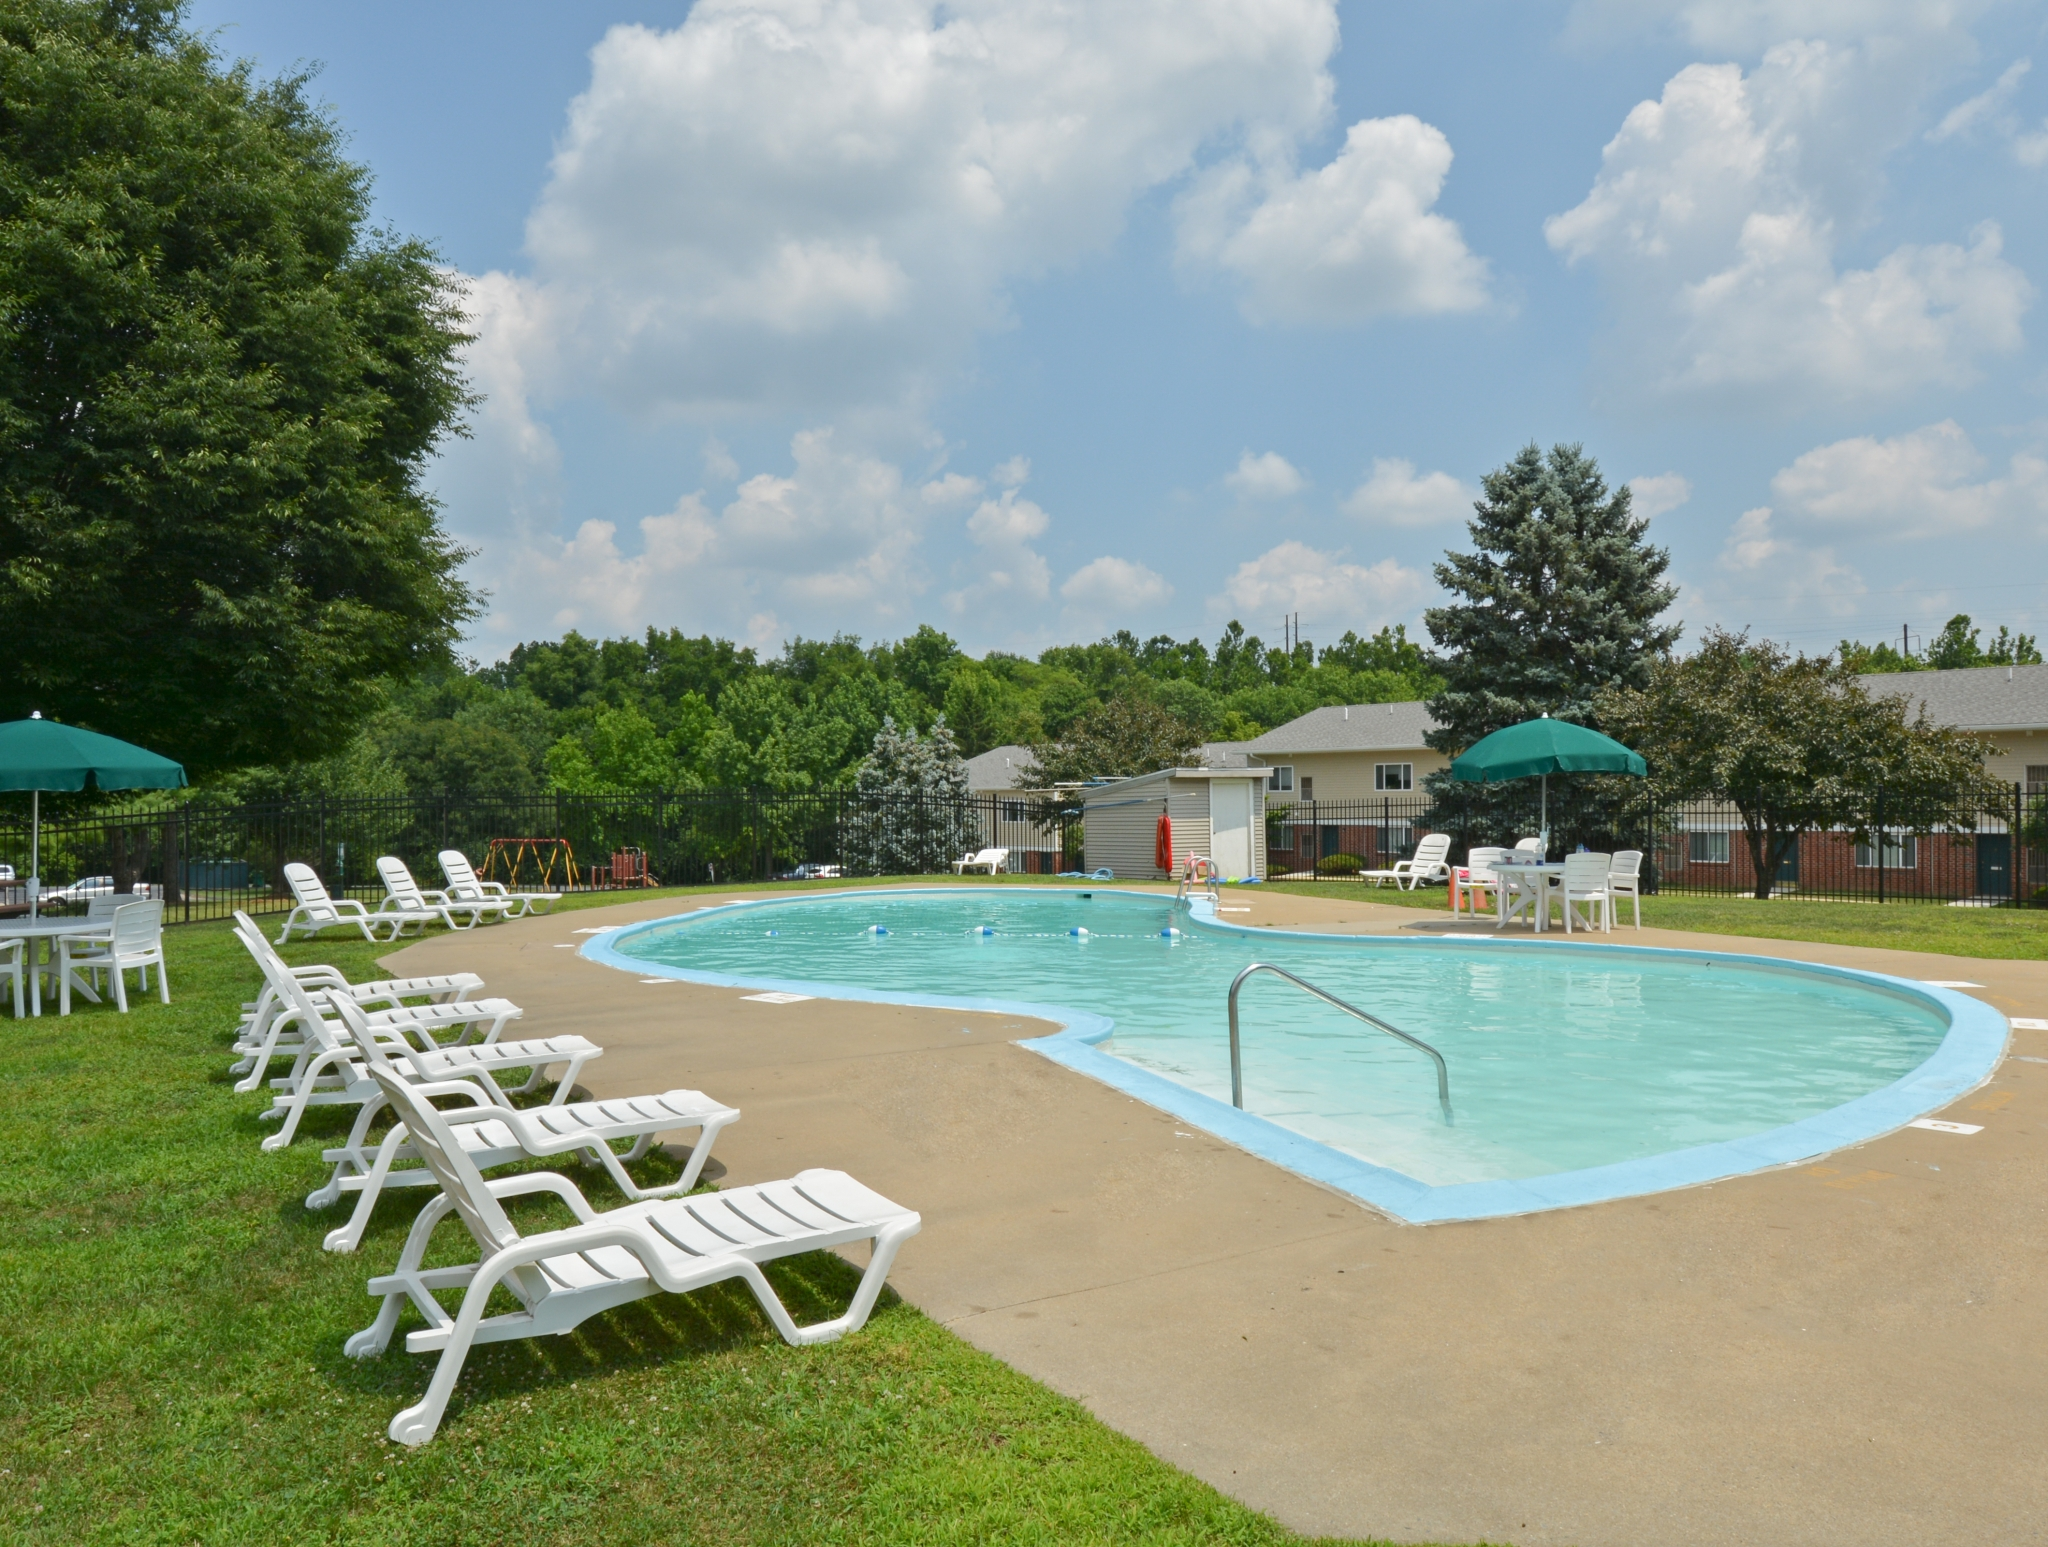 Swimming Pool | Apartment For Rent Lancaster PA | Park City North Apartments